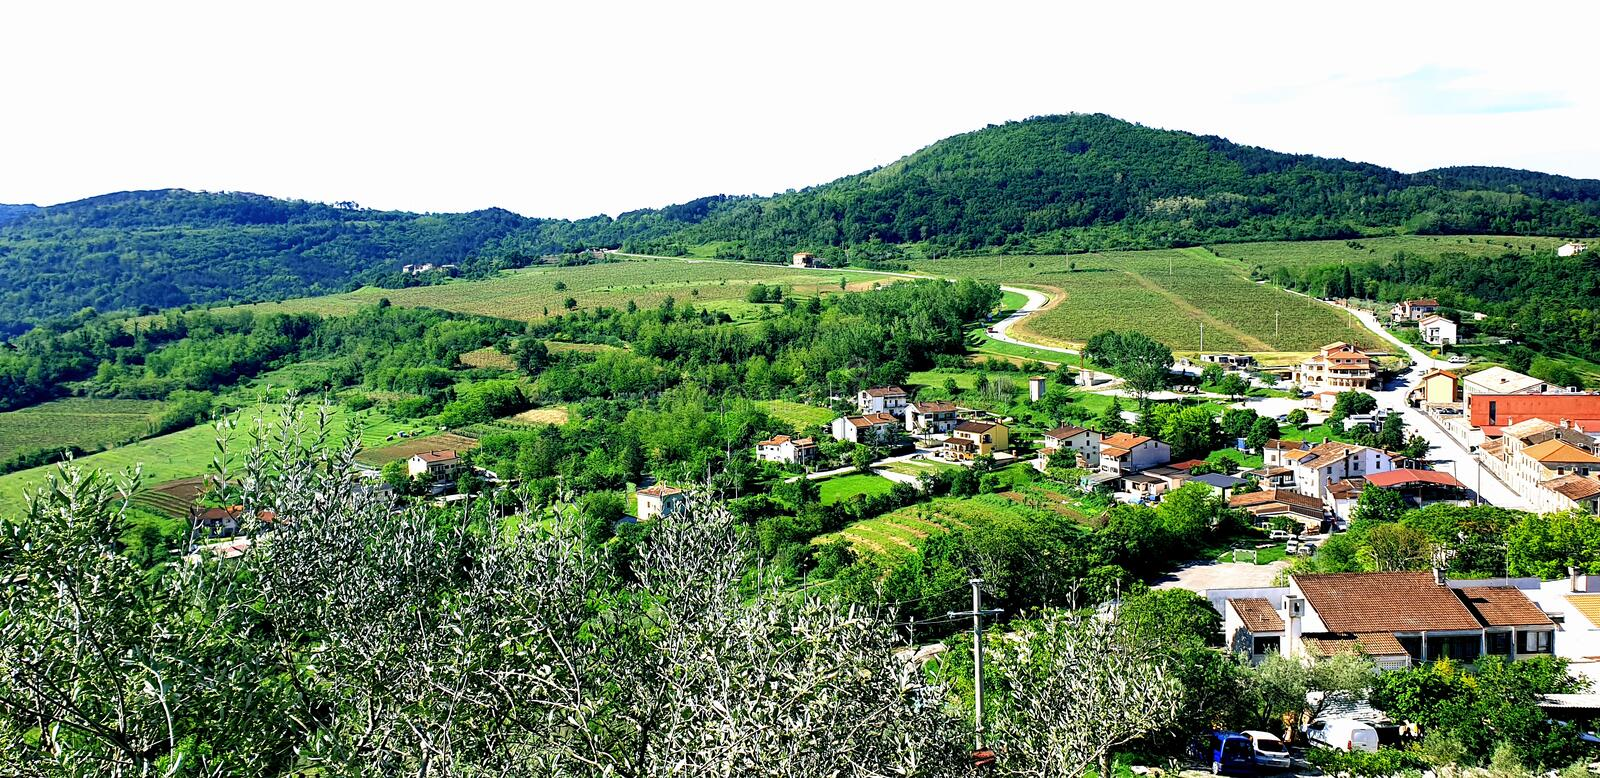 Village in spring time with hills and houses like in post cards. Croatian village fool of green fields and hills with small house royalty free stock photo